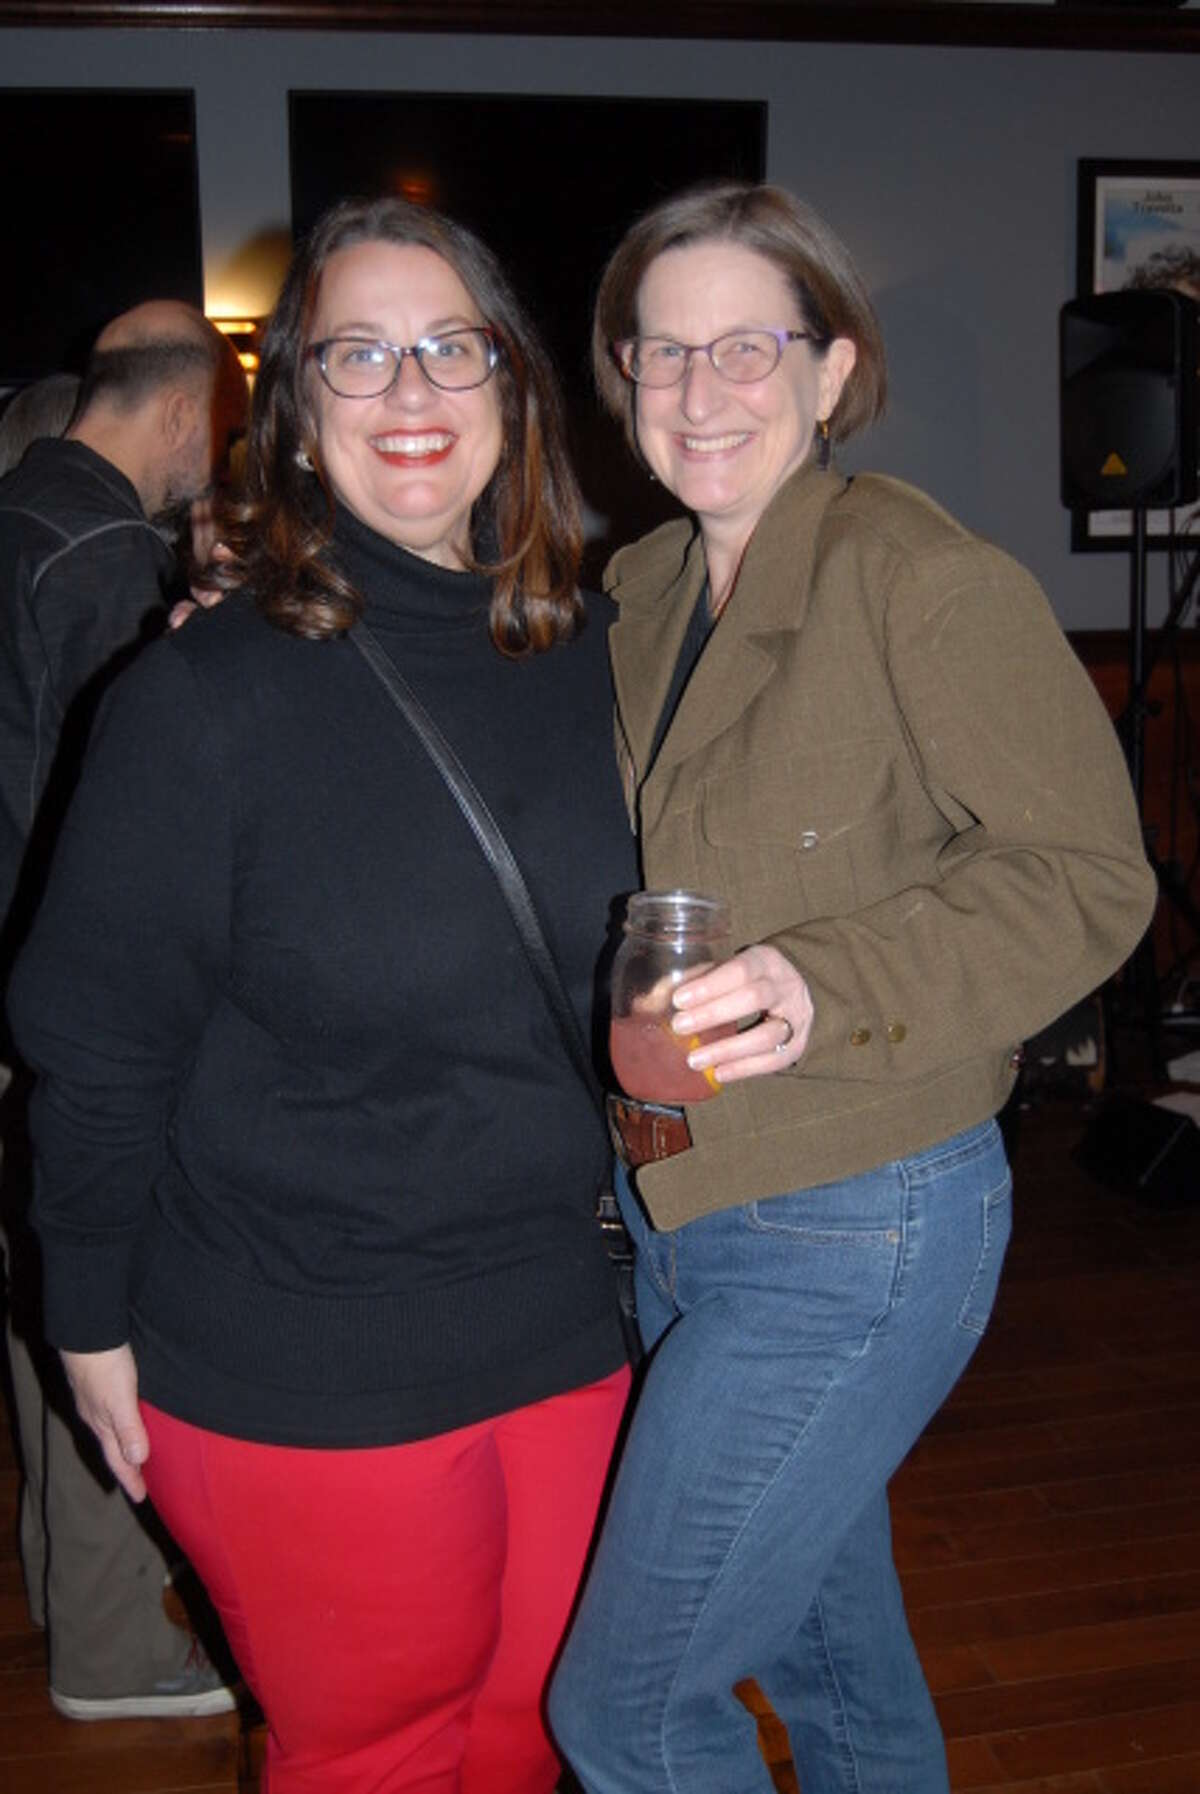 Were you Seen at the Albany Fund for Education's fundraiser for the Feed and Read Program at the Madison Theatre in Albany on Feb. 22, 2020?